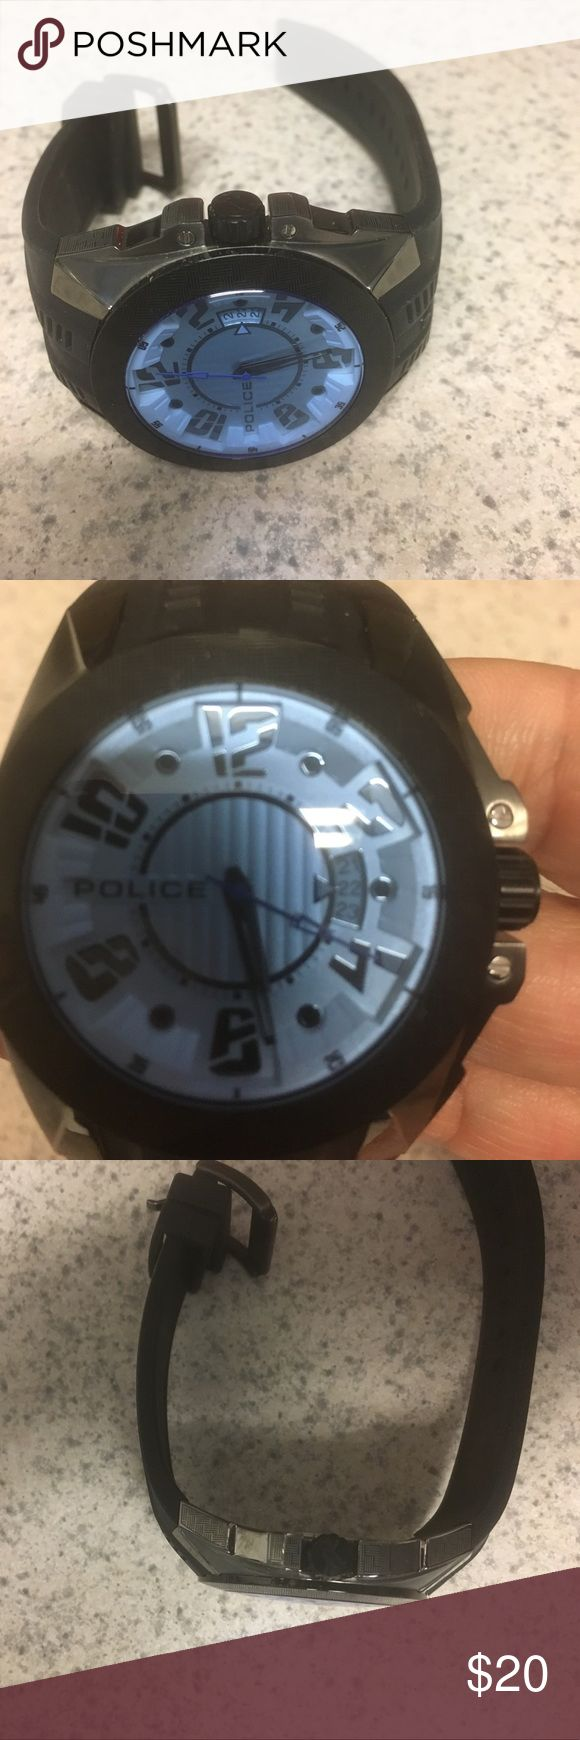 Men's digital watch Police brand new hardly worn Black Police Brand Men's watch stylish and digital! Hardly worn with no imperfections police Accessories Watches